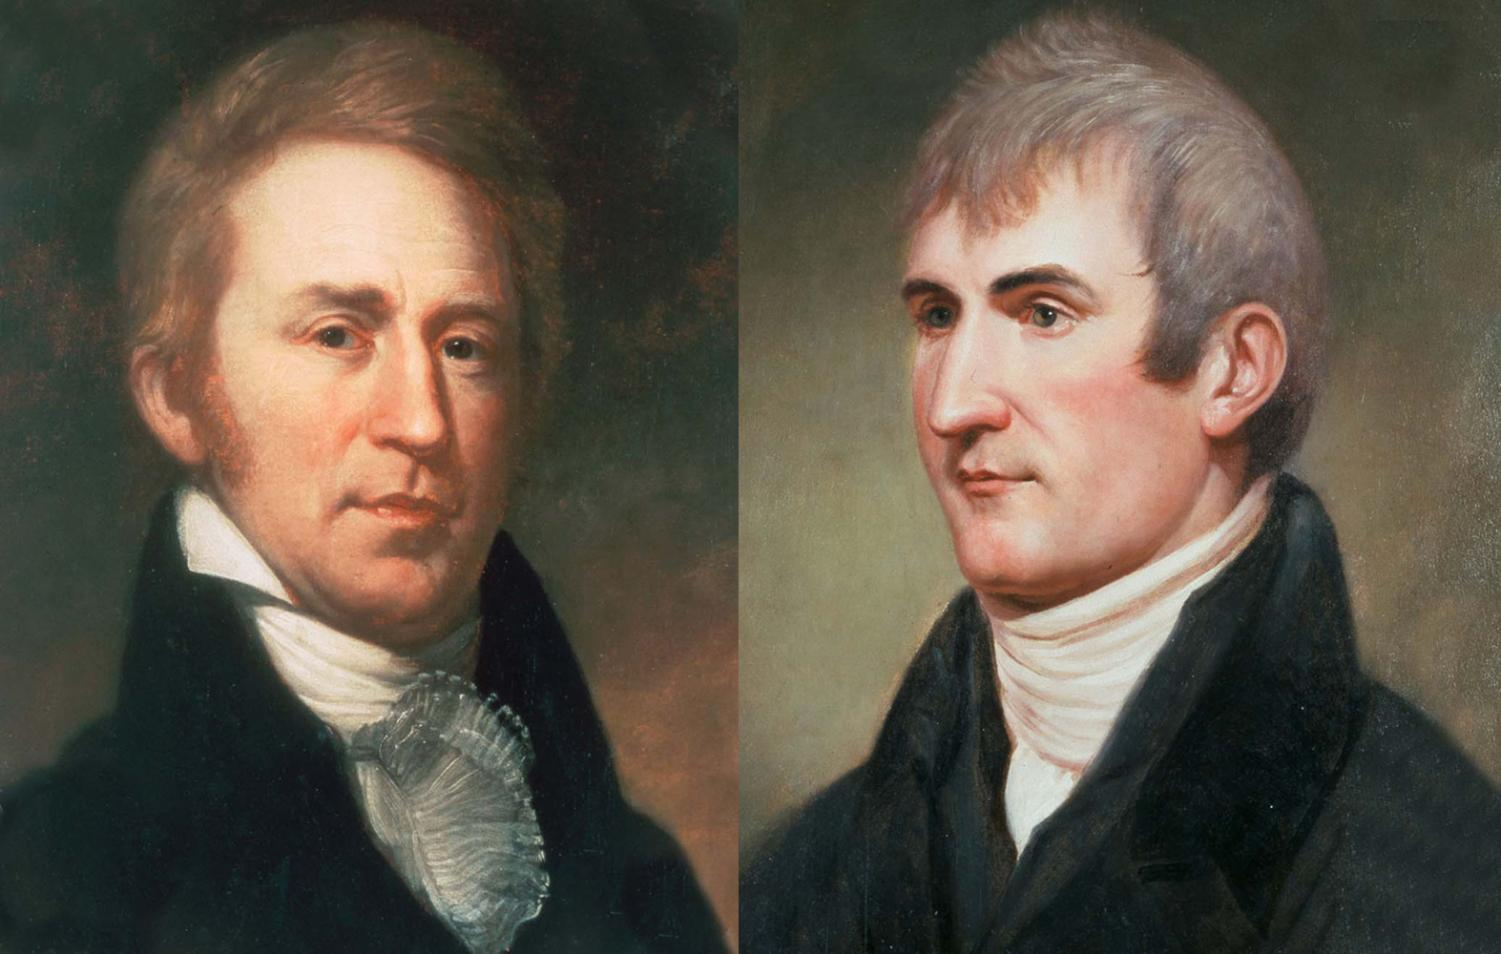 A famed duo, Lewis and Clark are responsible for exploring most of the new land acquired by the Louisiana Purchase.